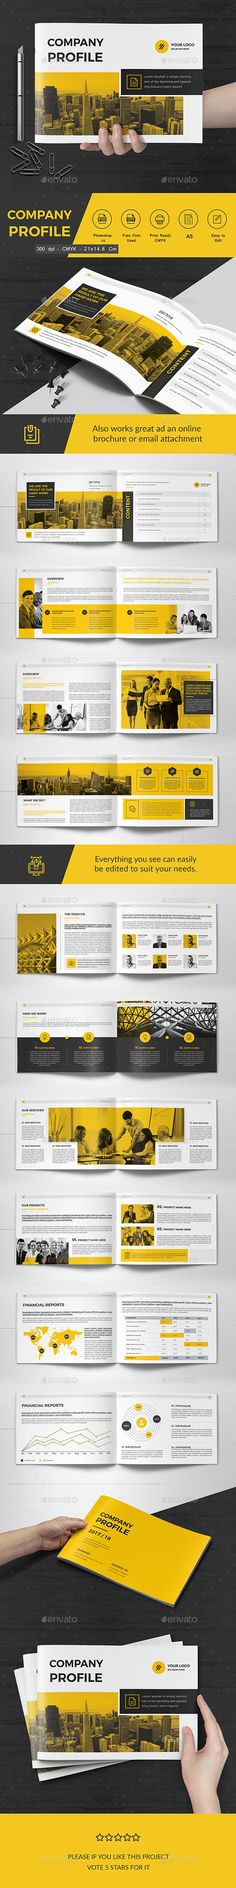 Co Landscape Brochure 22 Pages - Corporate Brochures Download here : https://graphicriver.net/item/co-landscape-brochure-22-pages/20228067?s_rank=44&ref=Al-fatih #brochure #brochure design #brochure template  #design #premium design #bifold #trifold